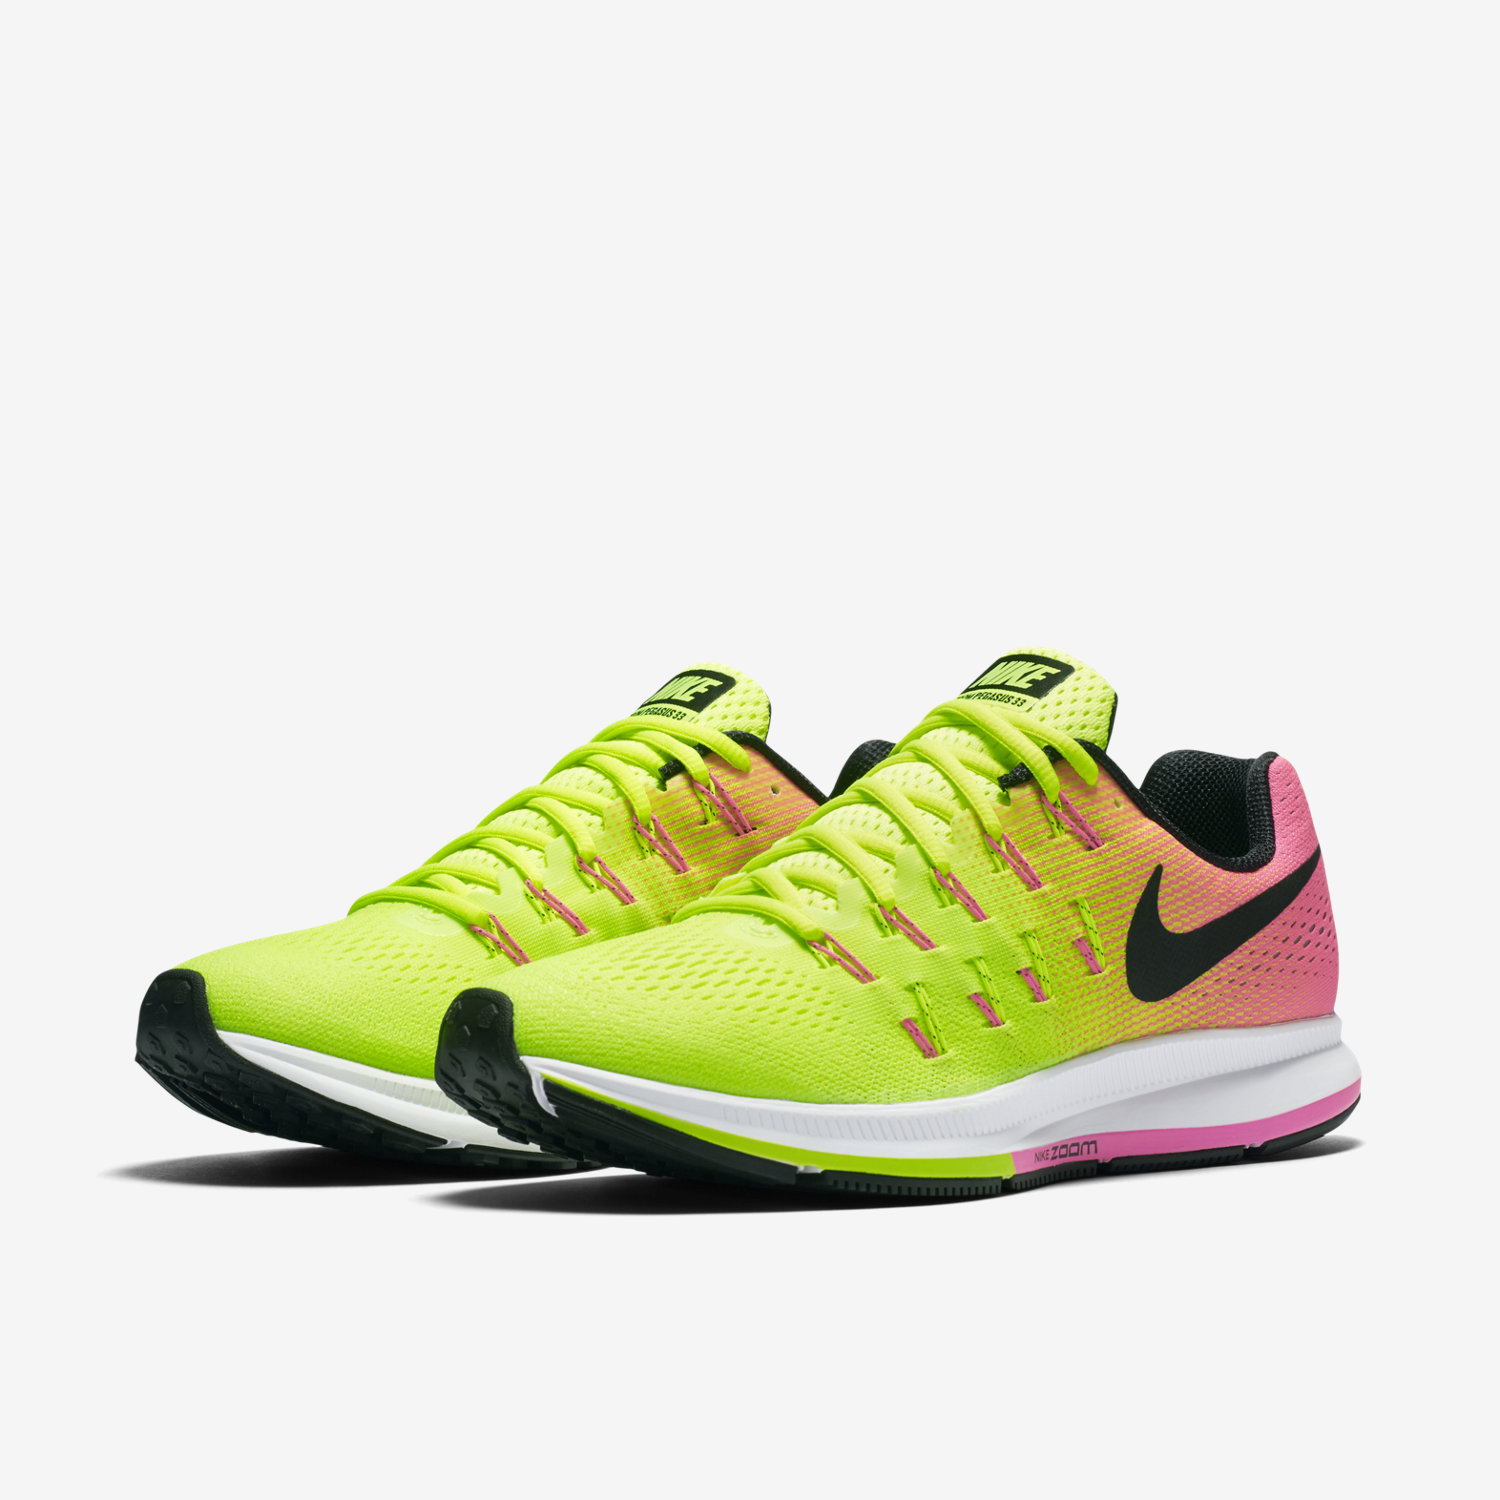 grand choix de cae5e 7651b coupon for nike zoom pegasus 33 damänner orange rosa 1b175 c749c